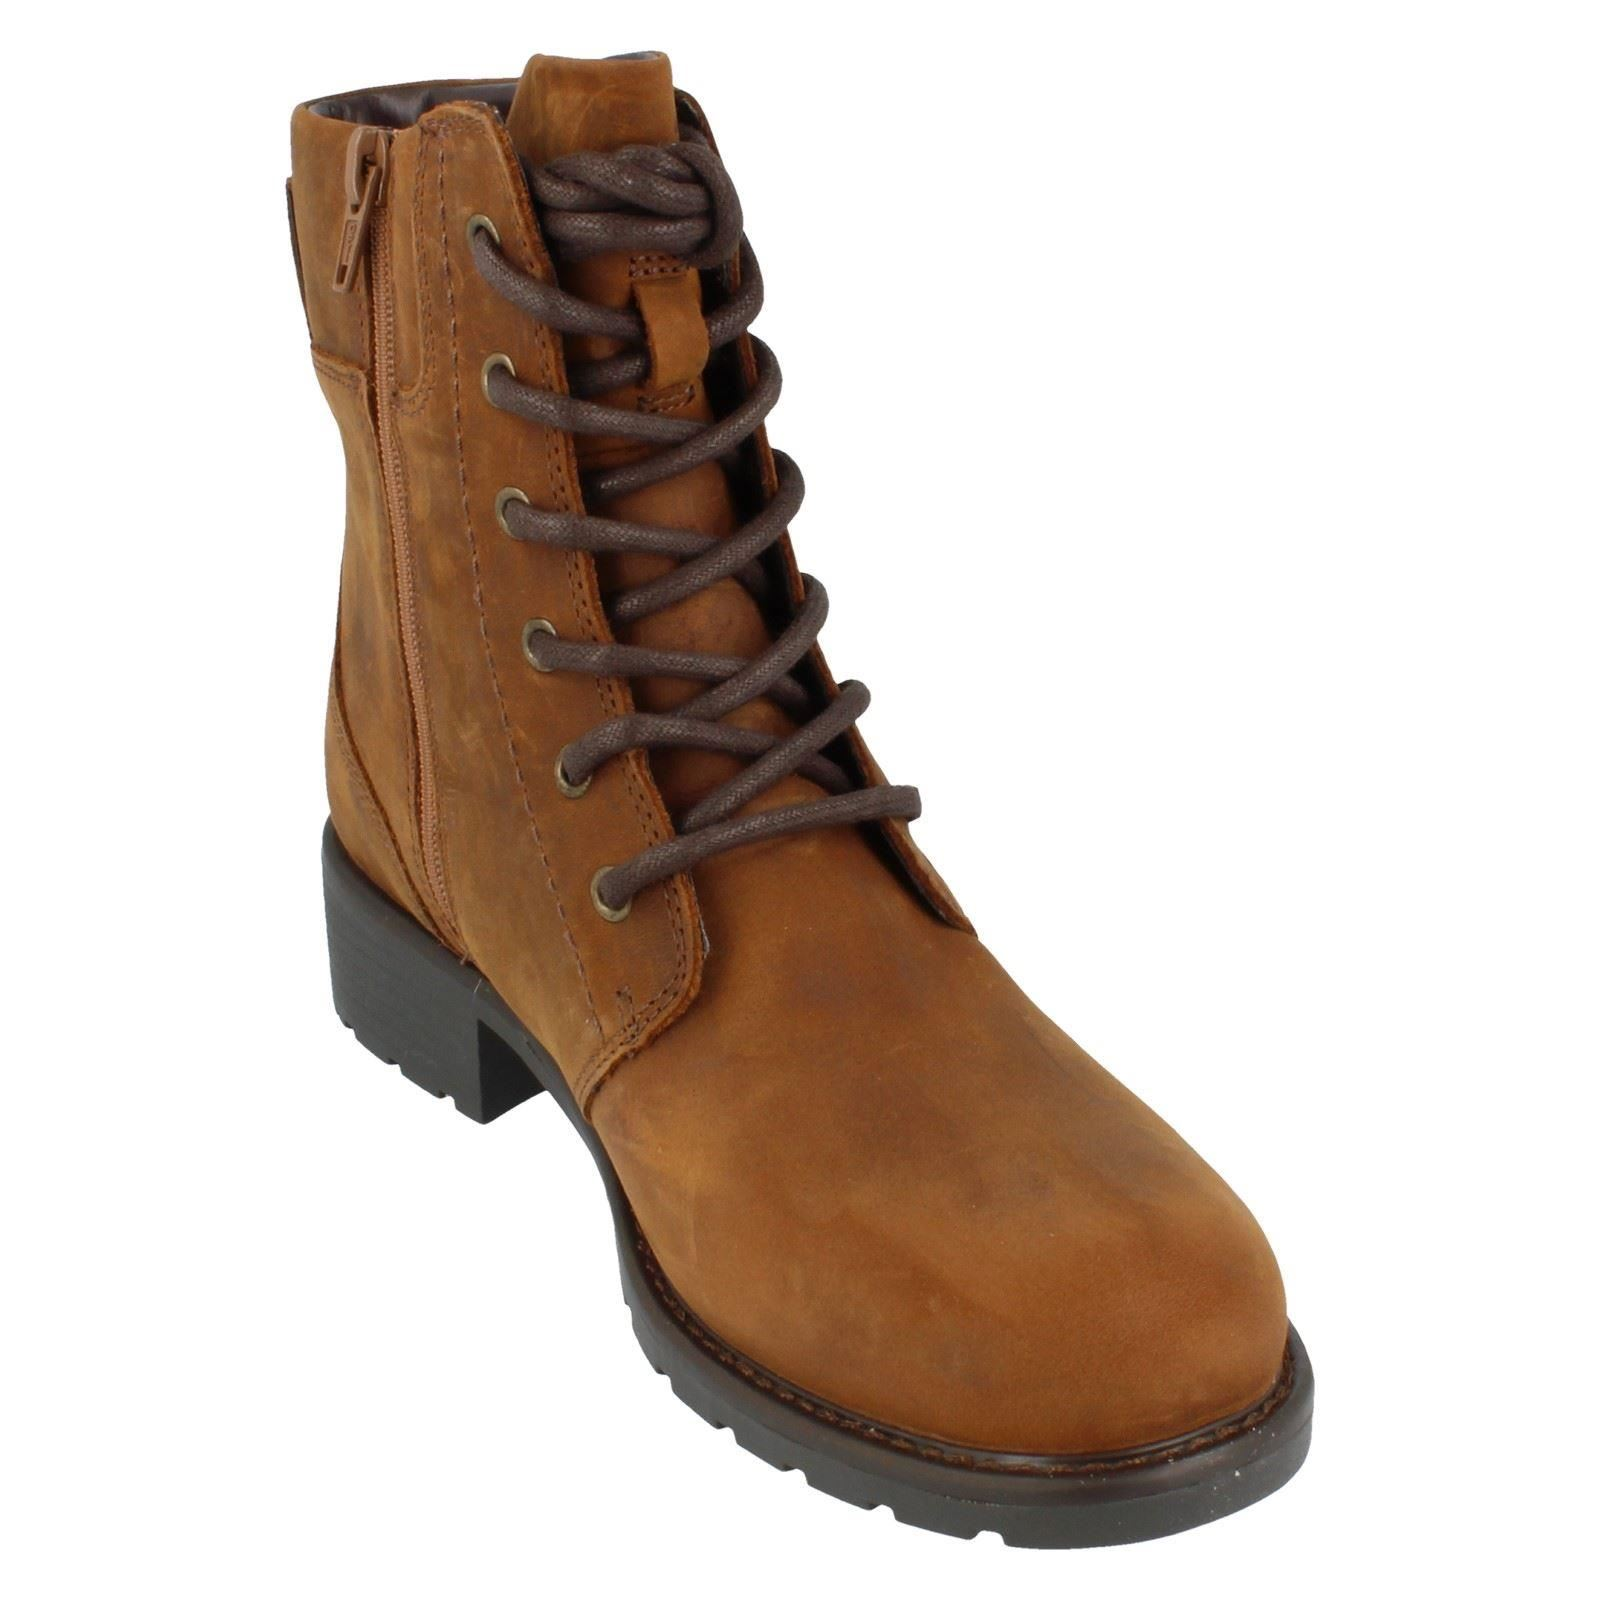 Ladies-Clarks-Casual-Lace-Up-Inside-Zip-Nubuck-Leather-Ankle-Boots-Orinoco-Spice thumbnail 17